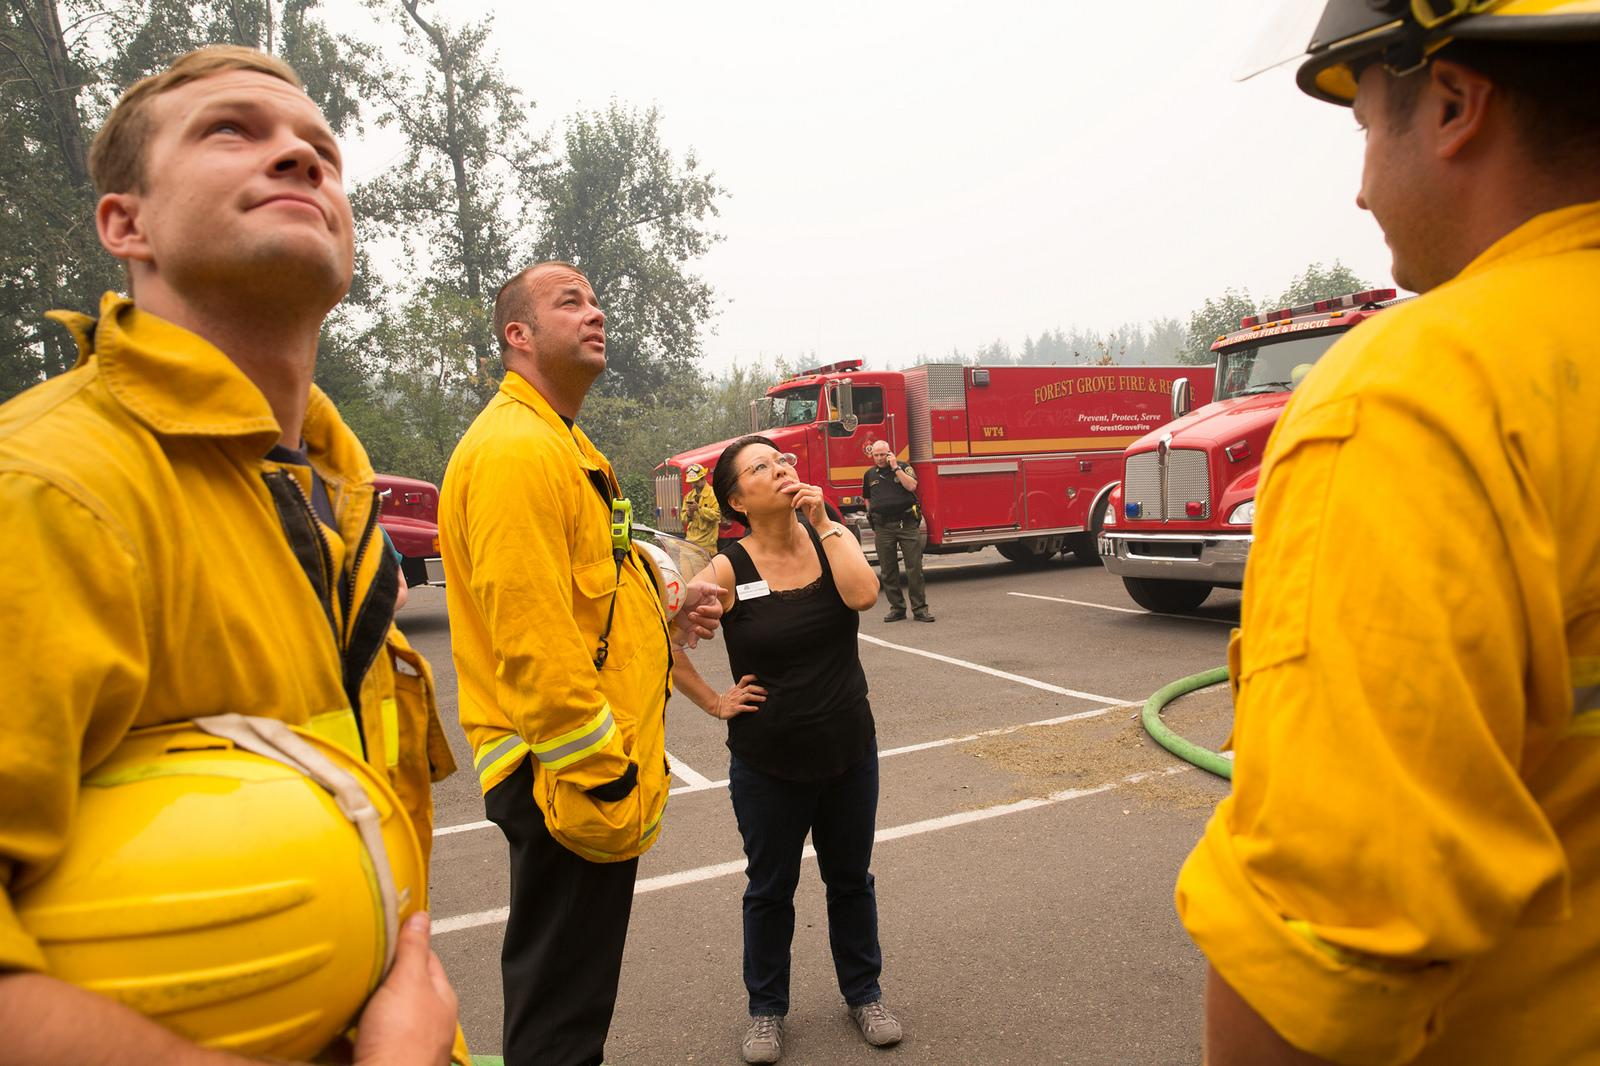 More than 600 firefighters are working to contain the Eagle Creek Fire in the Columbia River Gorge. They're also taking precautionary measures to protect structures near the fire. Photo courtesy Multnomah County Communications